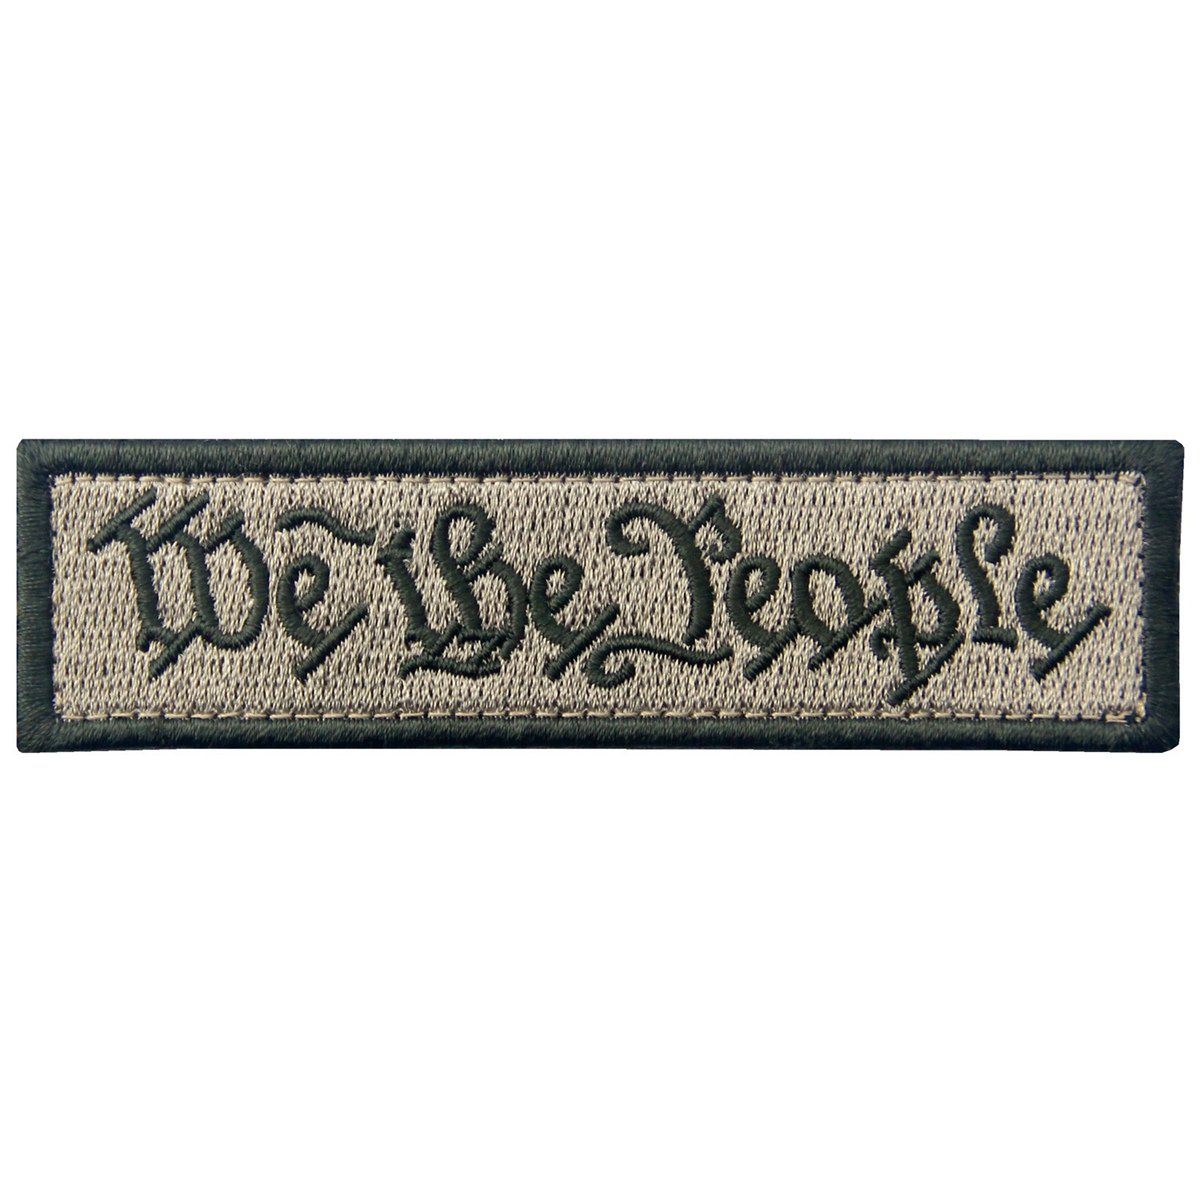 We The People Tactical Embroidered Morale Applique Fastener Hook&Loop Patch - Black EmbTao